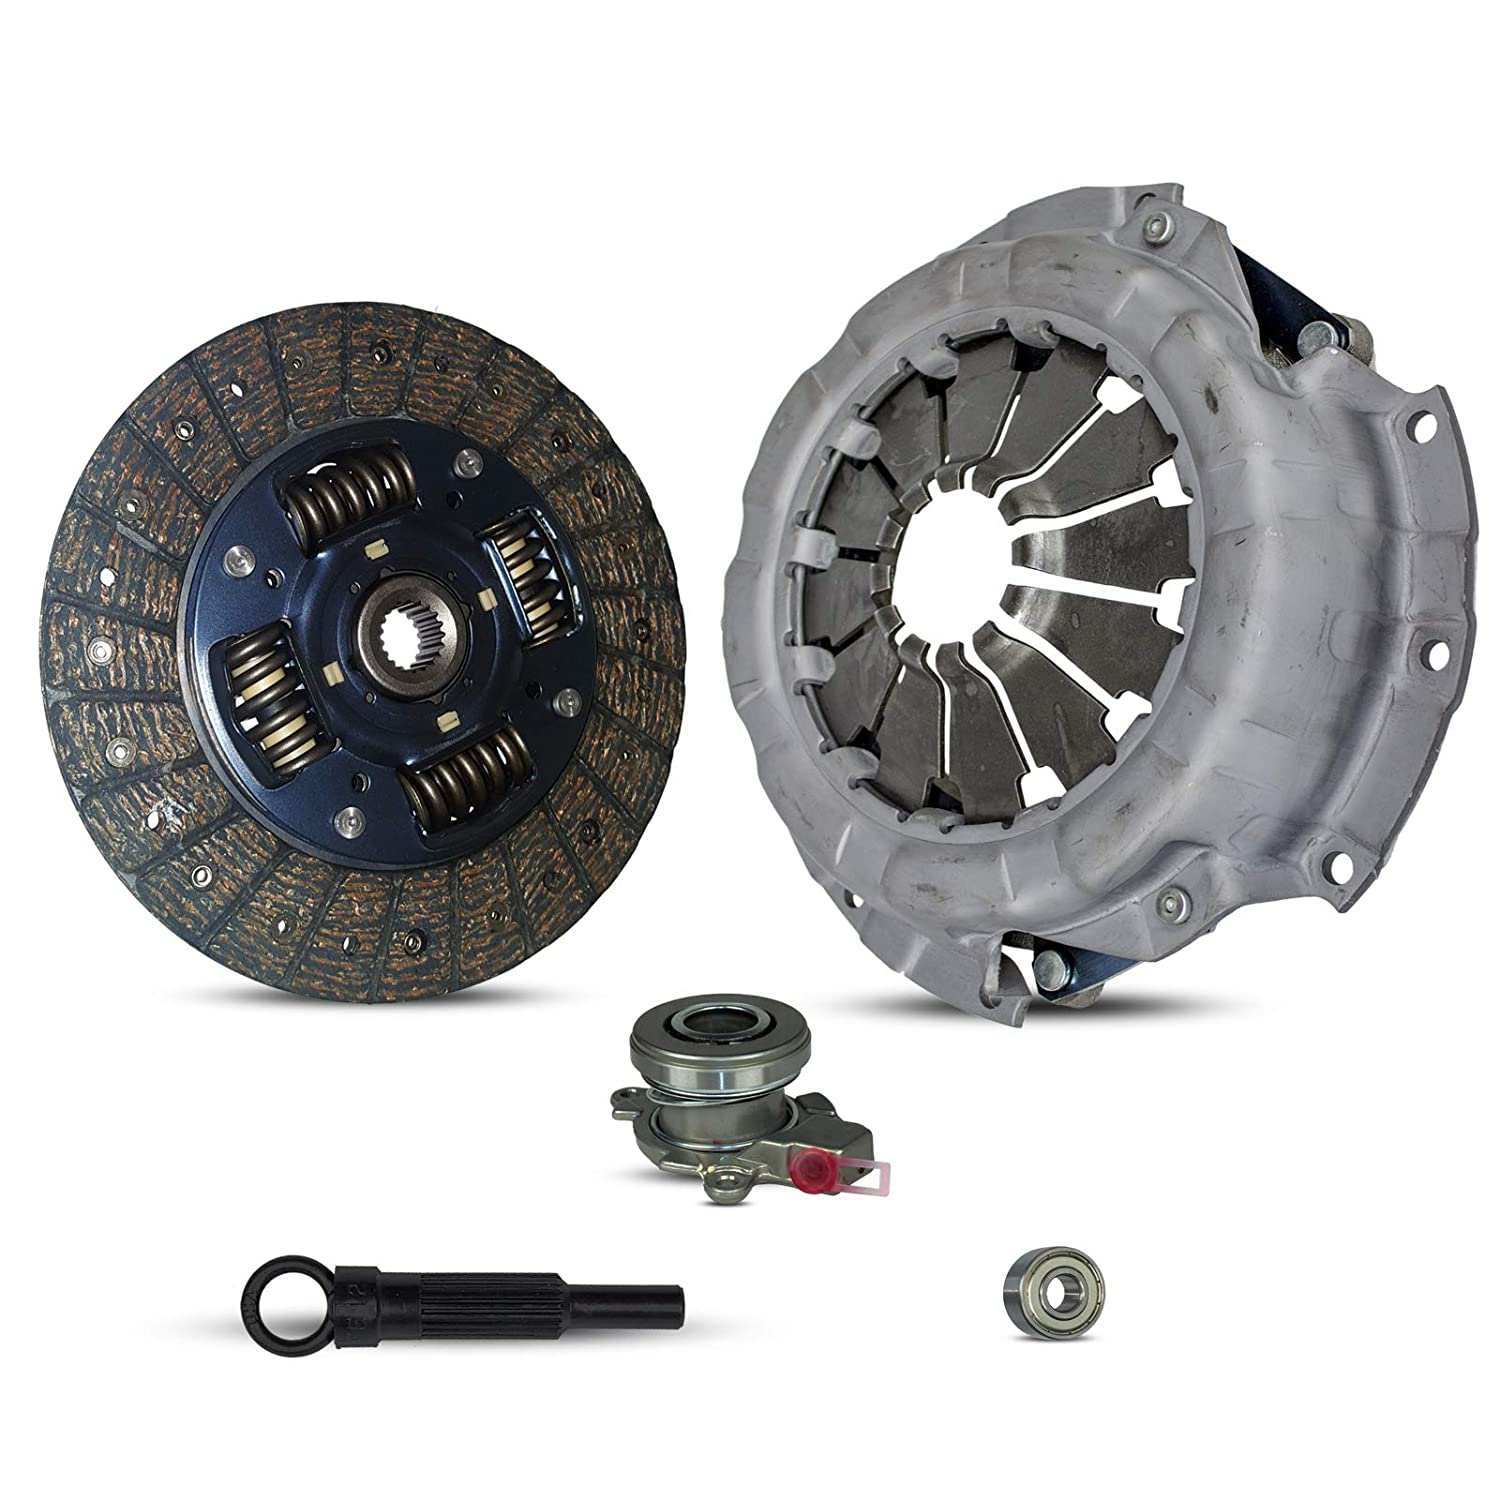 Clutch Kit With Slave Cylinder Works With Suzuki Sx4 Base Crossover LE  Sport JLX JX Sportback Sedan 2007-2010 2 0L l4 GAS DOHC Naturally Aspirated  (5